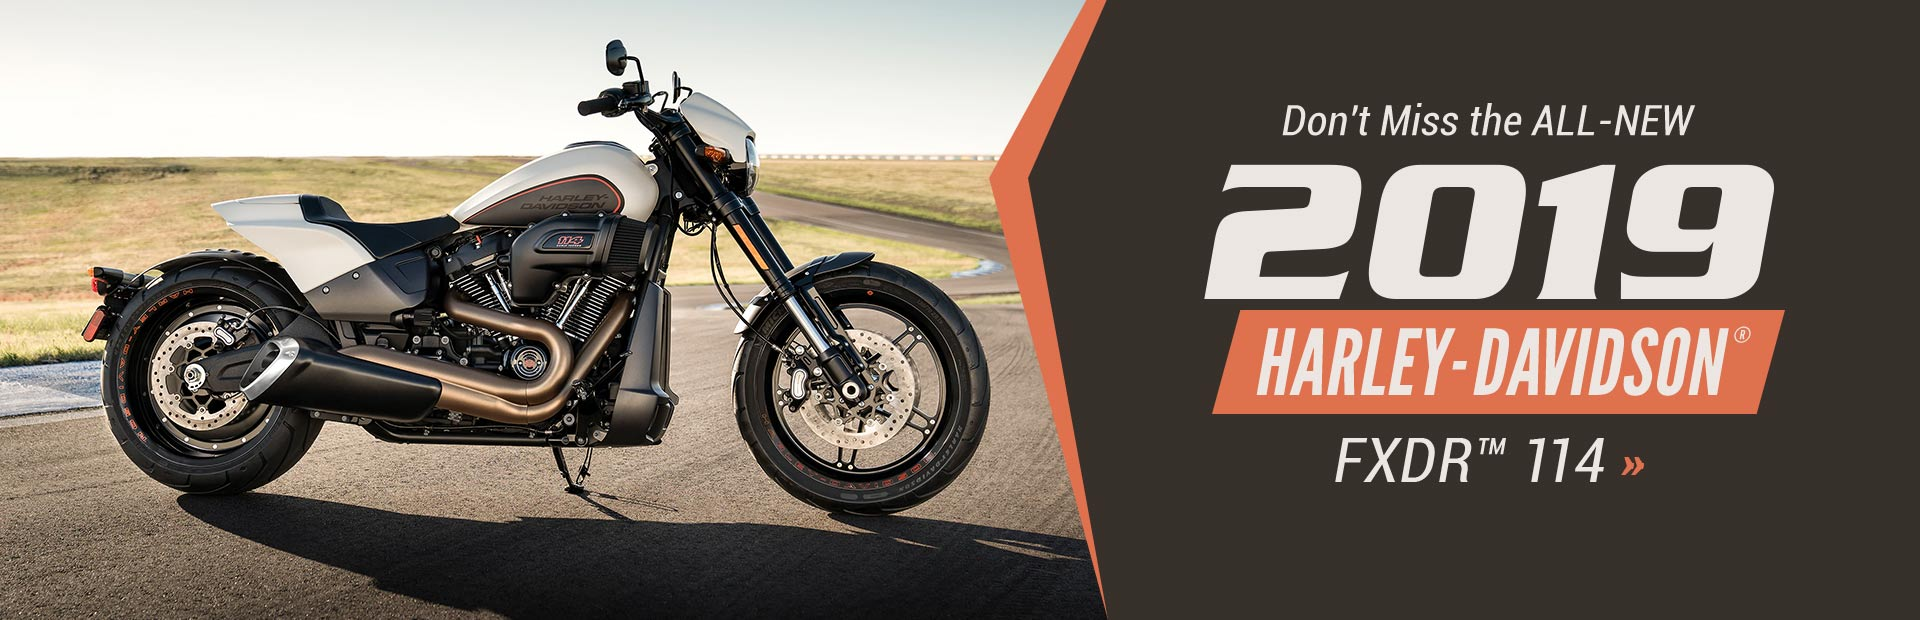 Don't miss the all-new 2019 Harley-Davidson® FXDR™ 114!